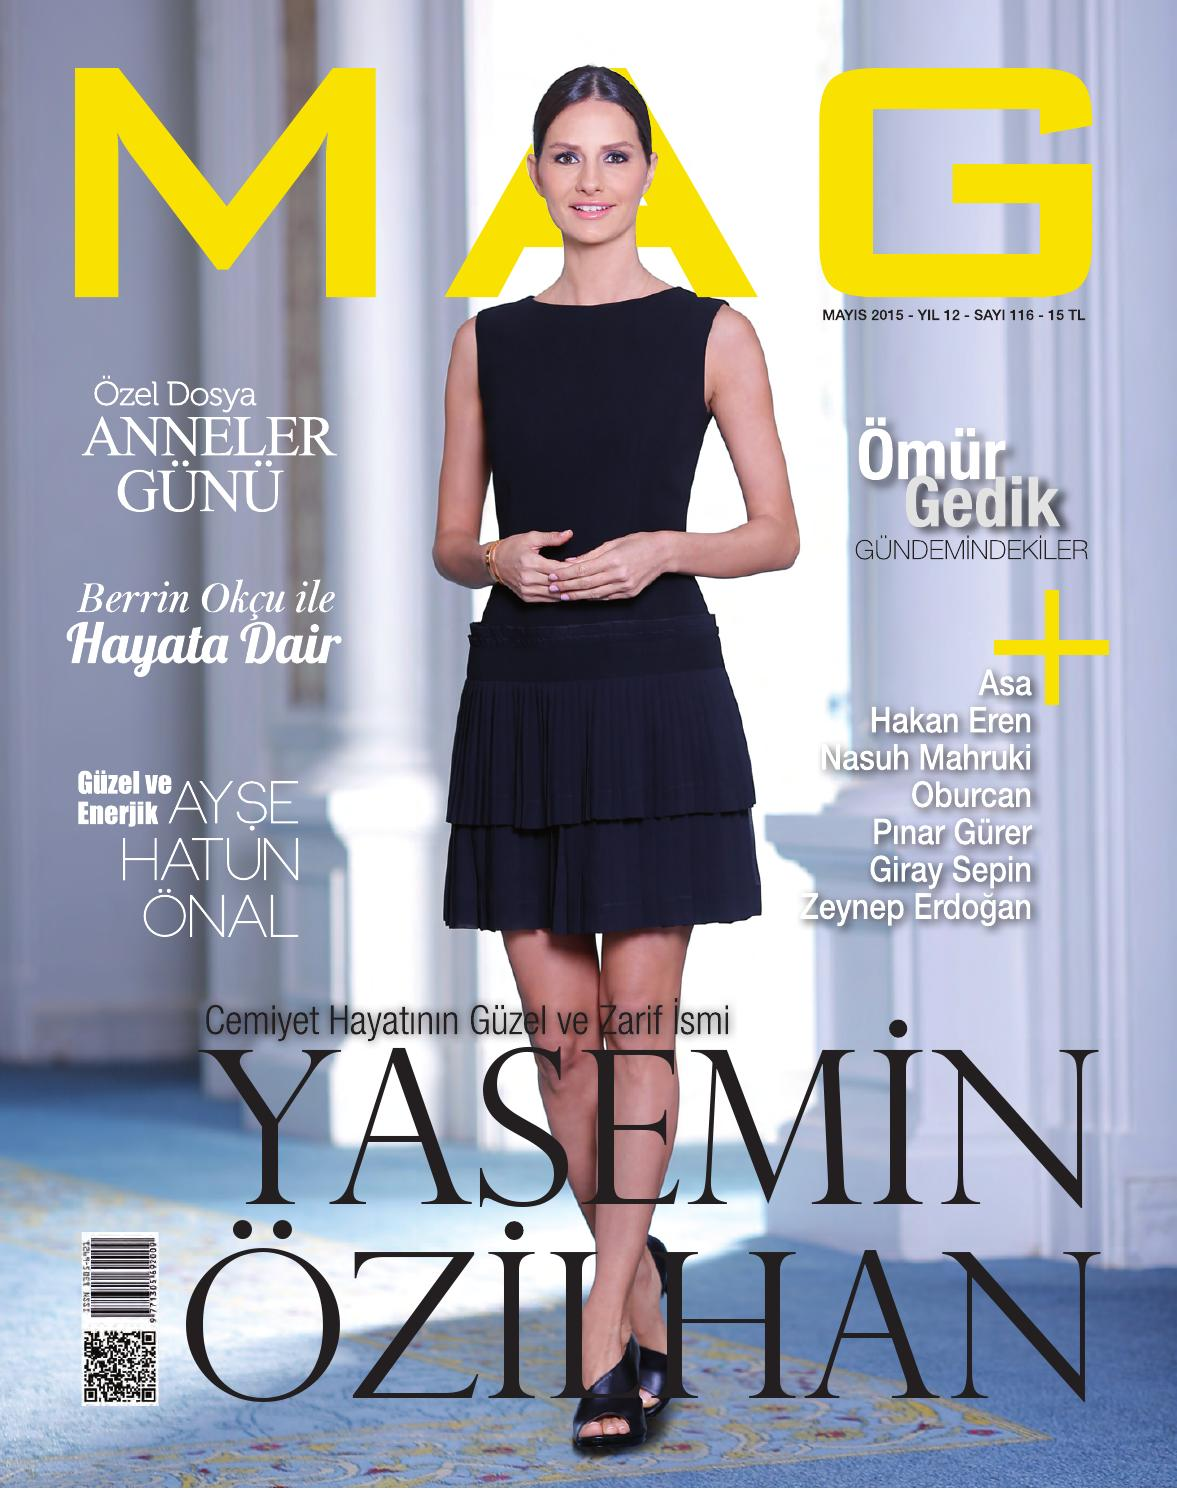 945de6f3d644d MAG Mayis 2015 by magdergi - issuu